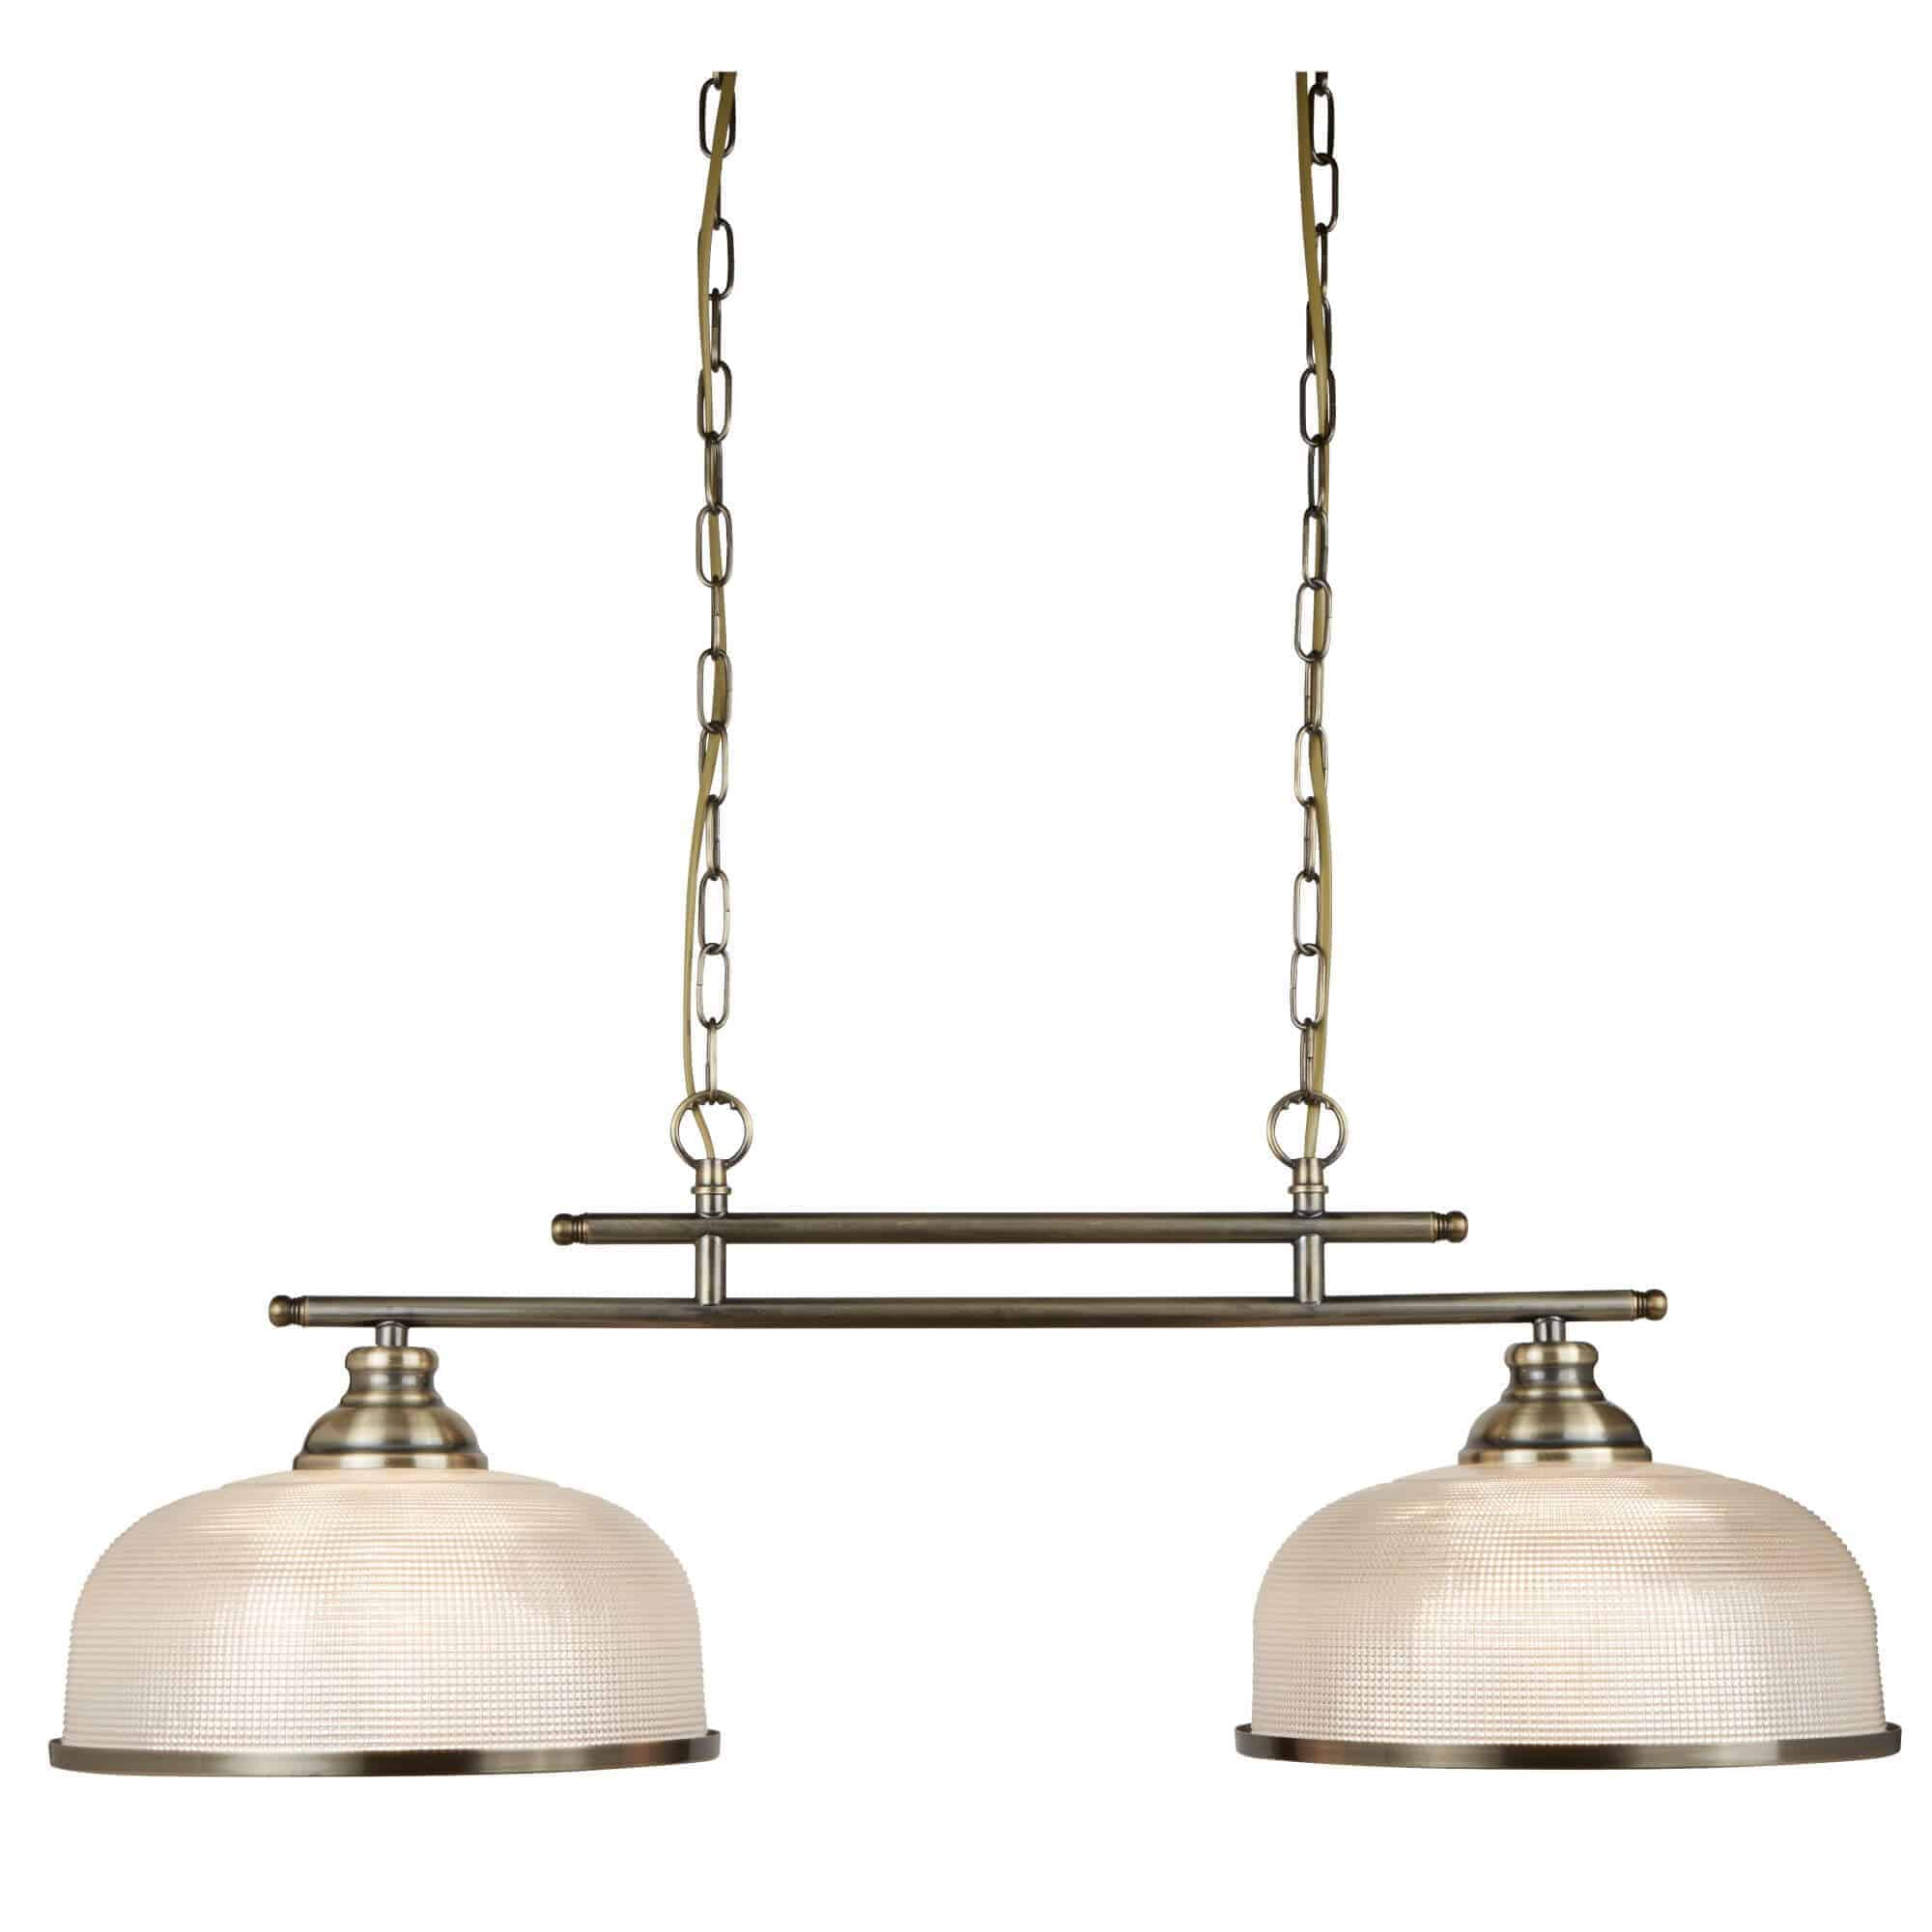 3592-2AB – Searchlight Bistro ii  Antique Brass 2 Light Ceiling Bar